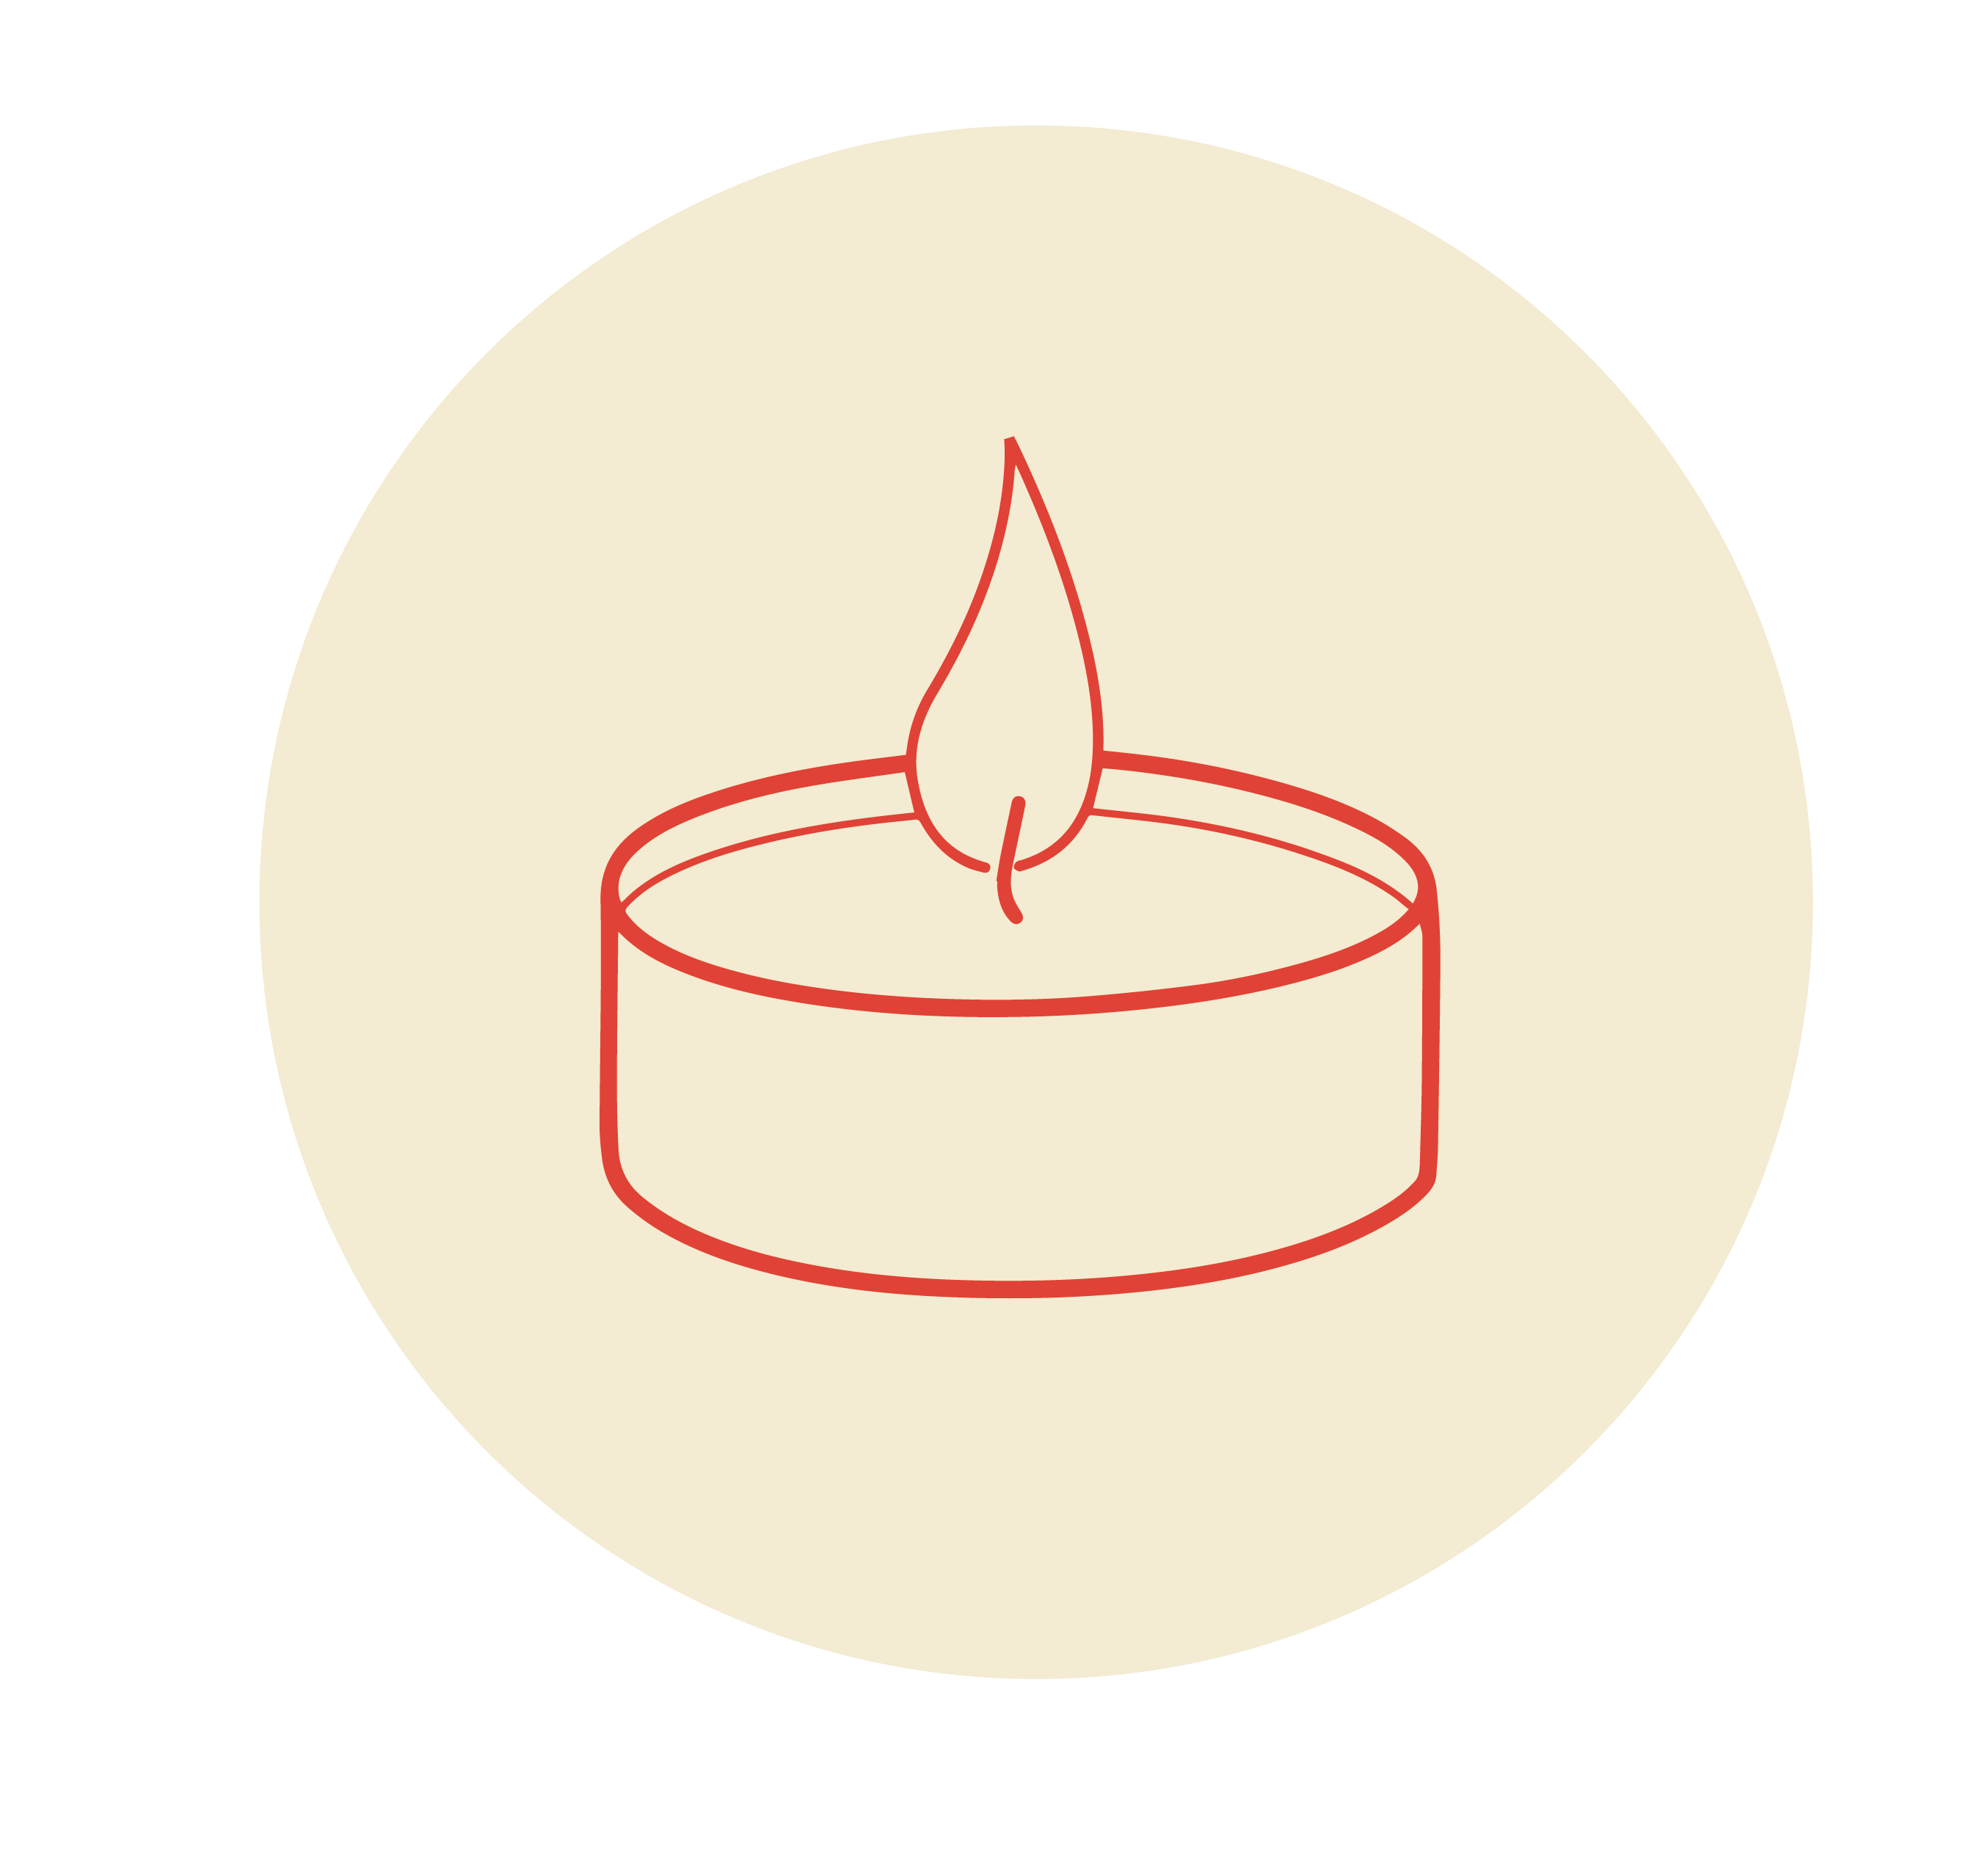 Candle-01.png